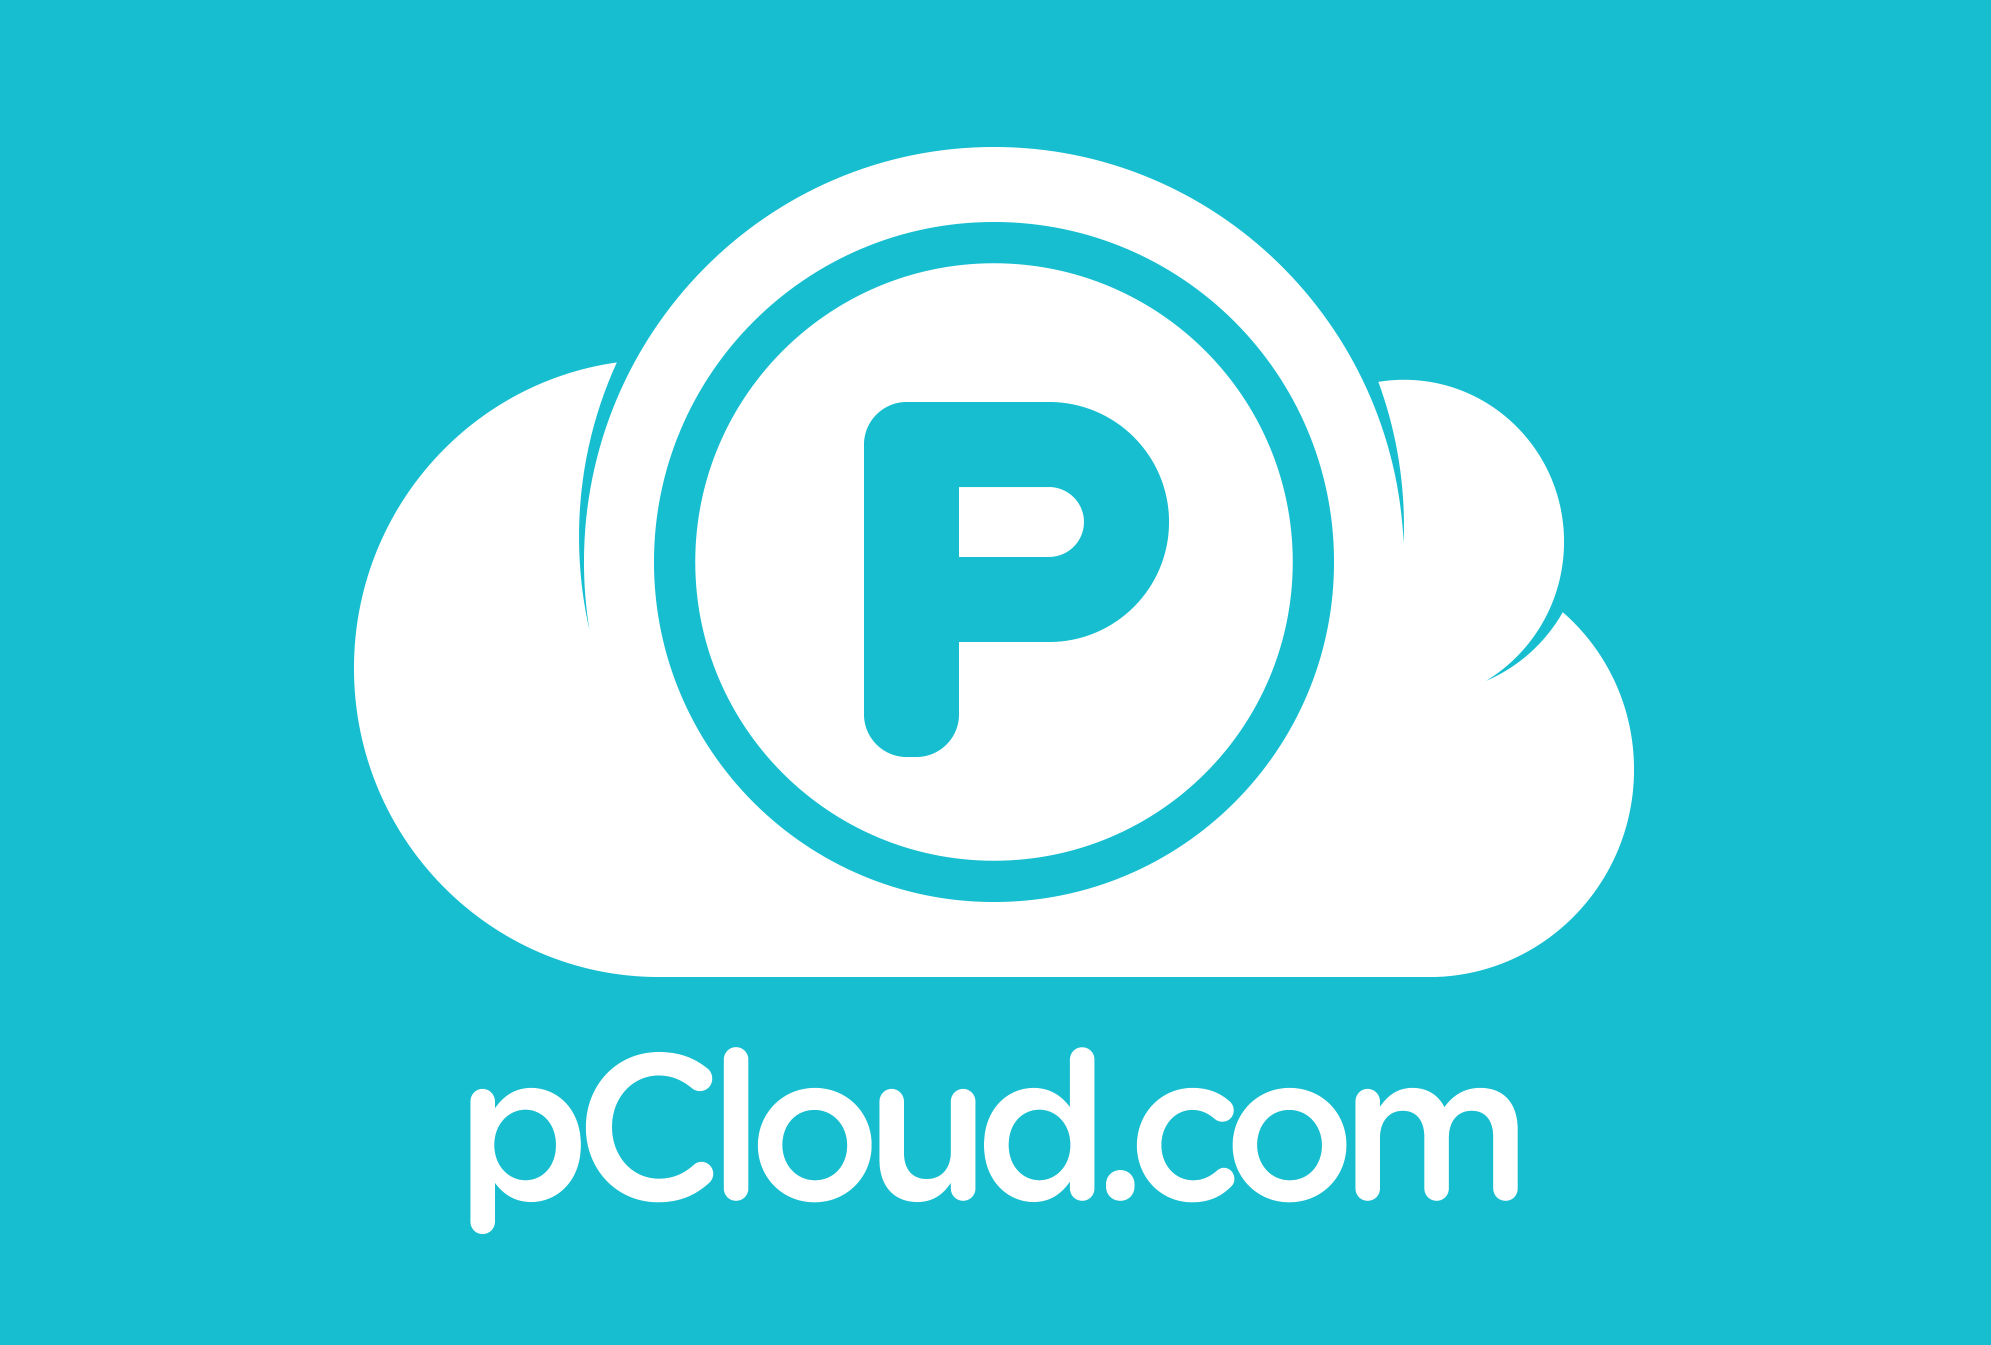 pcloud, cloud gratuito 20 gb